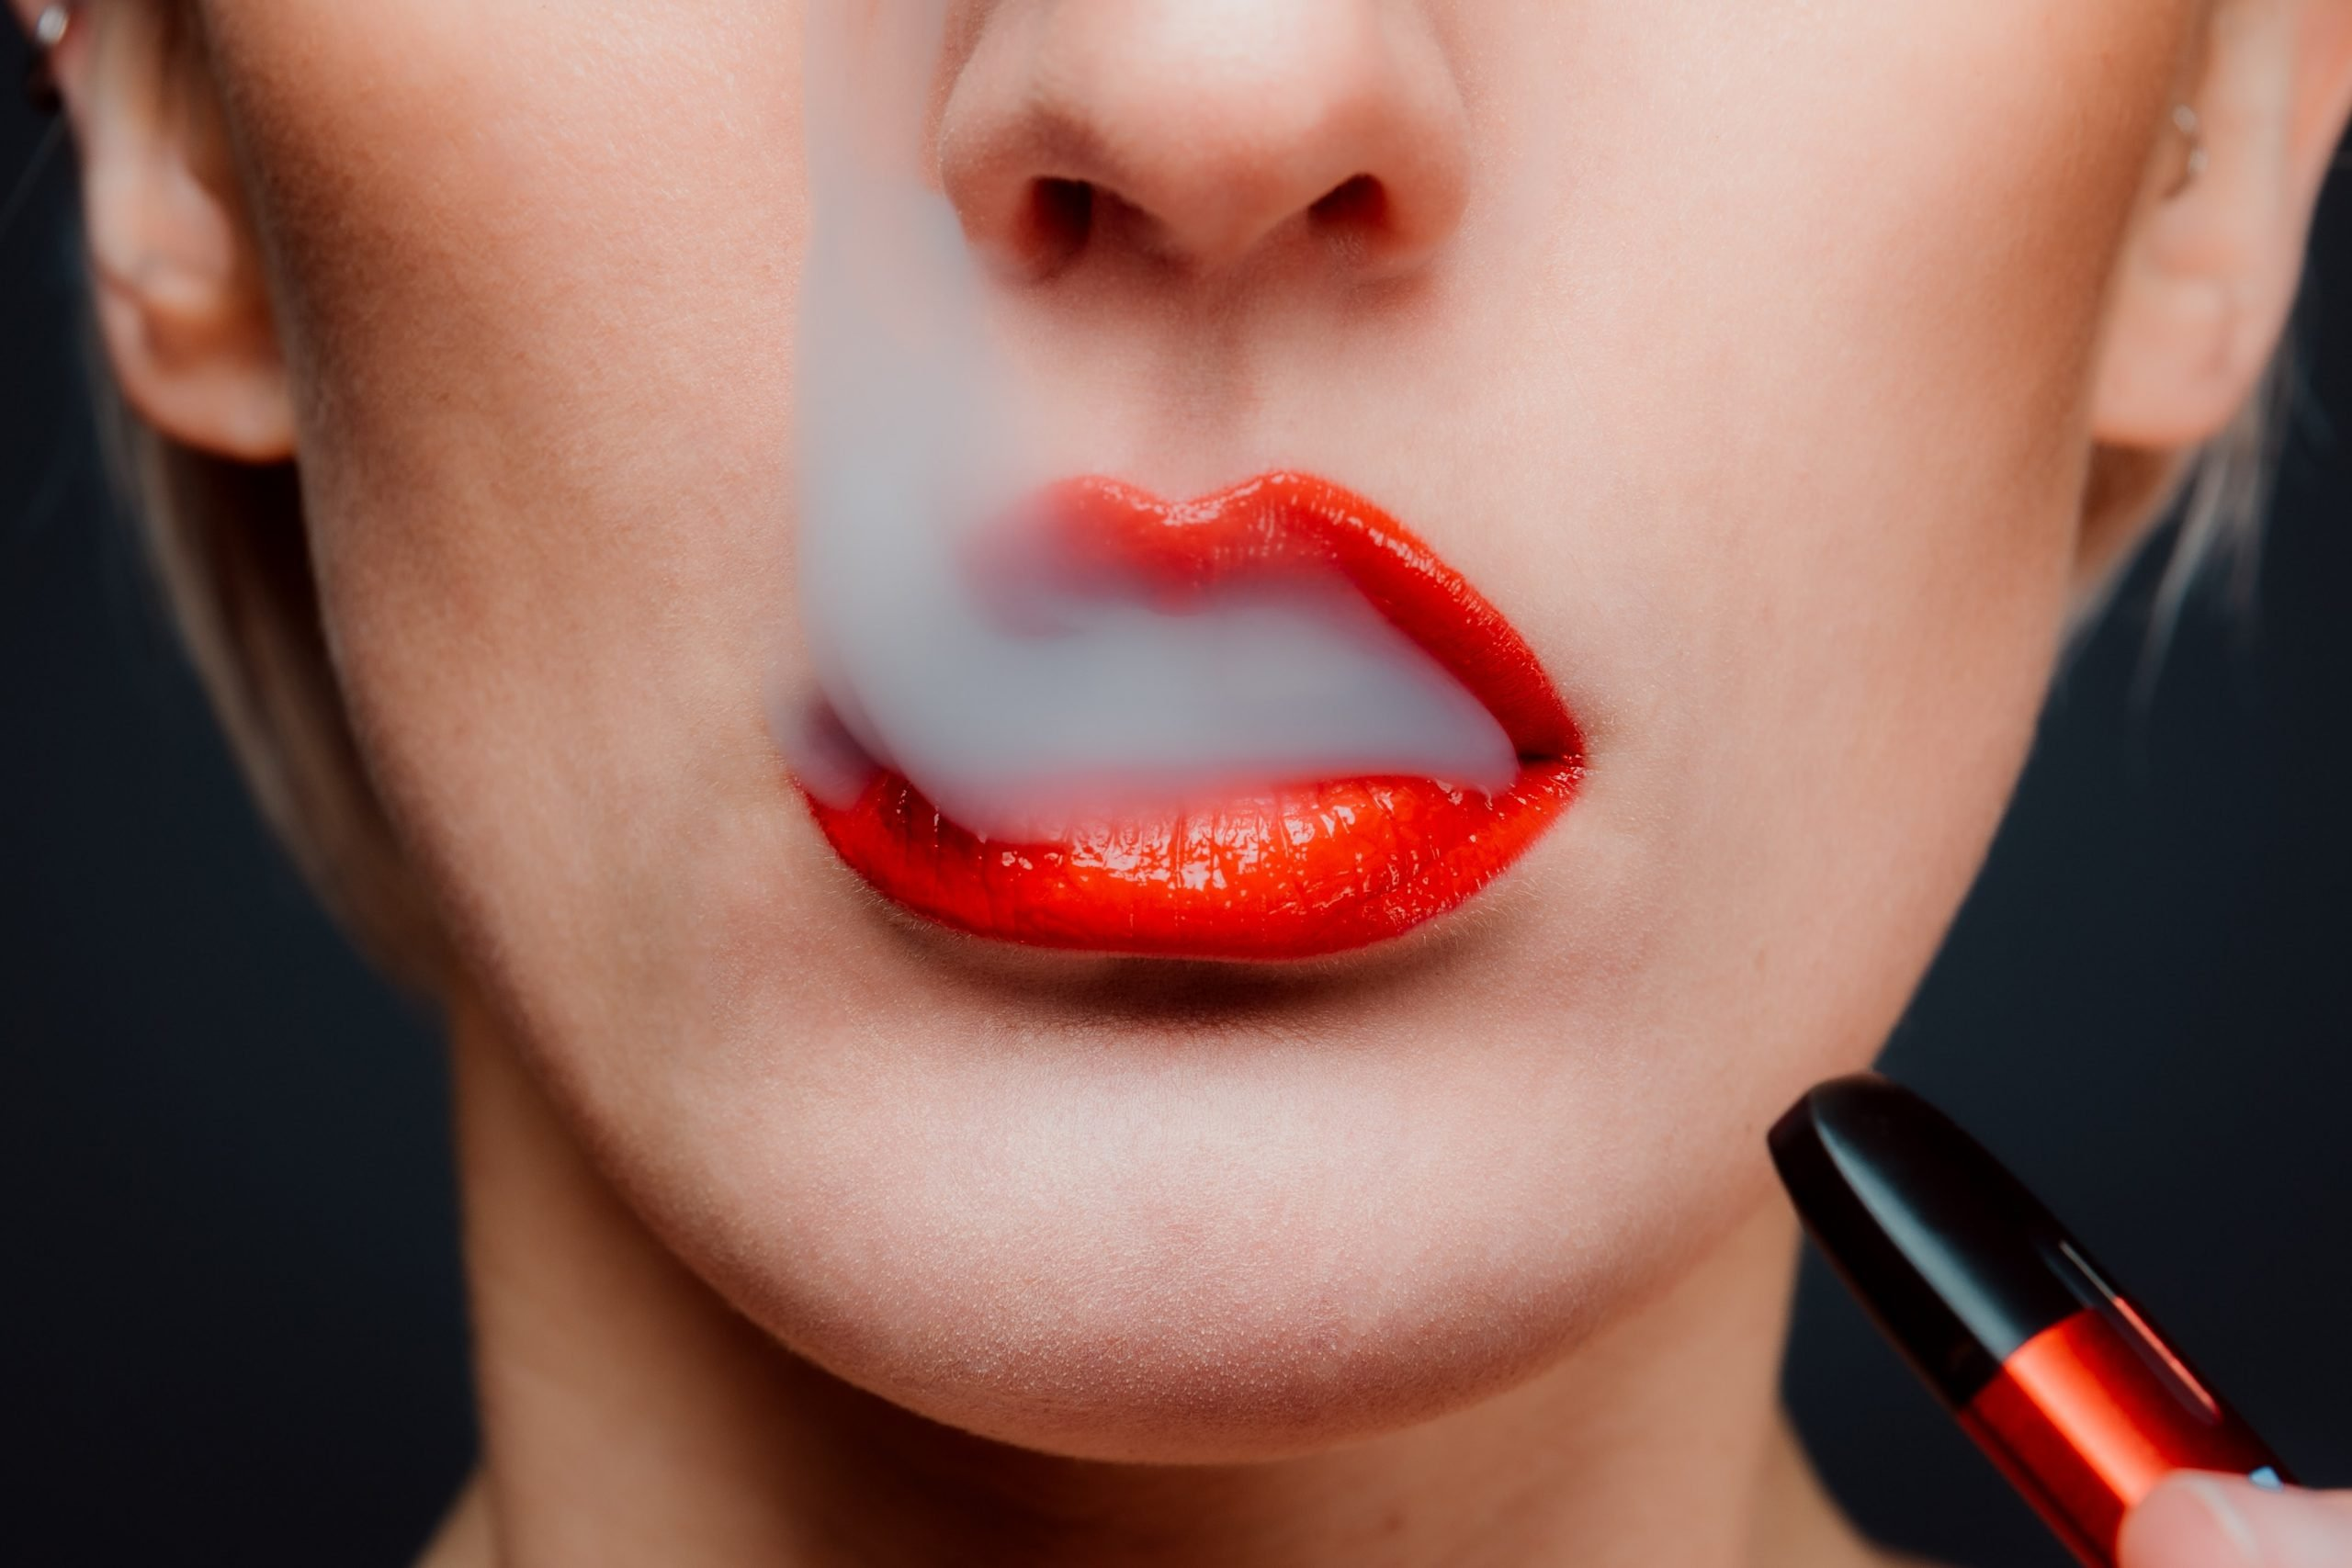 Vape Product Mail Ban: Everything You Need To Know As A Consumer and Business